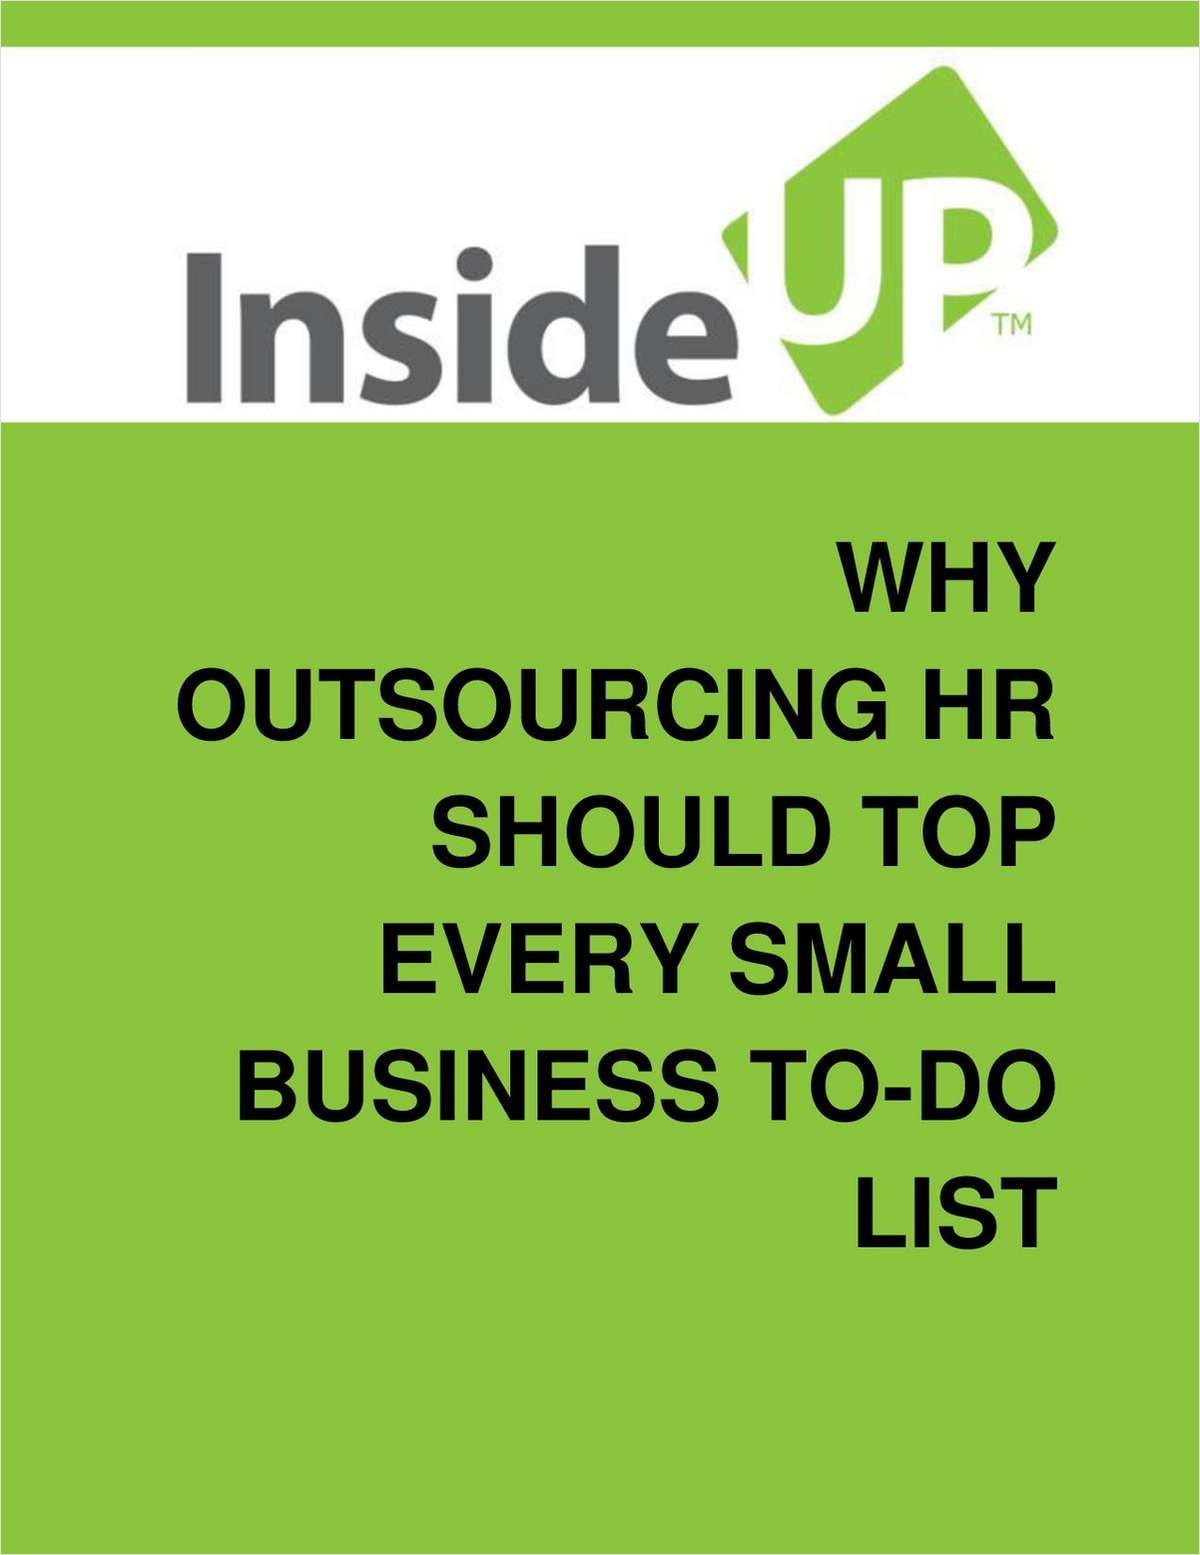 Why Outsourcing The HR Function Should Top Every Small Business To-Do List